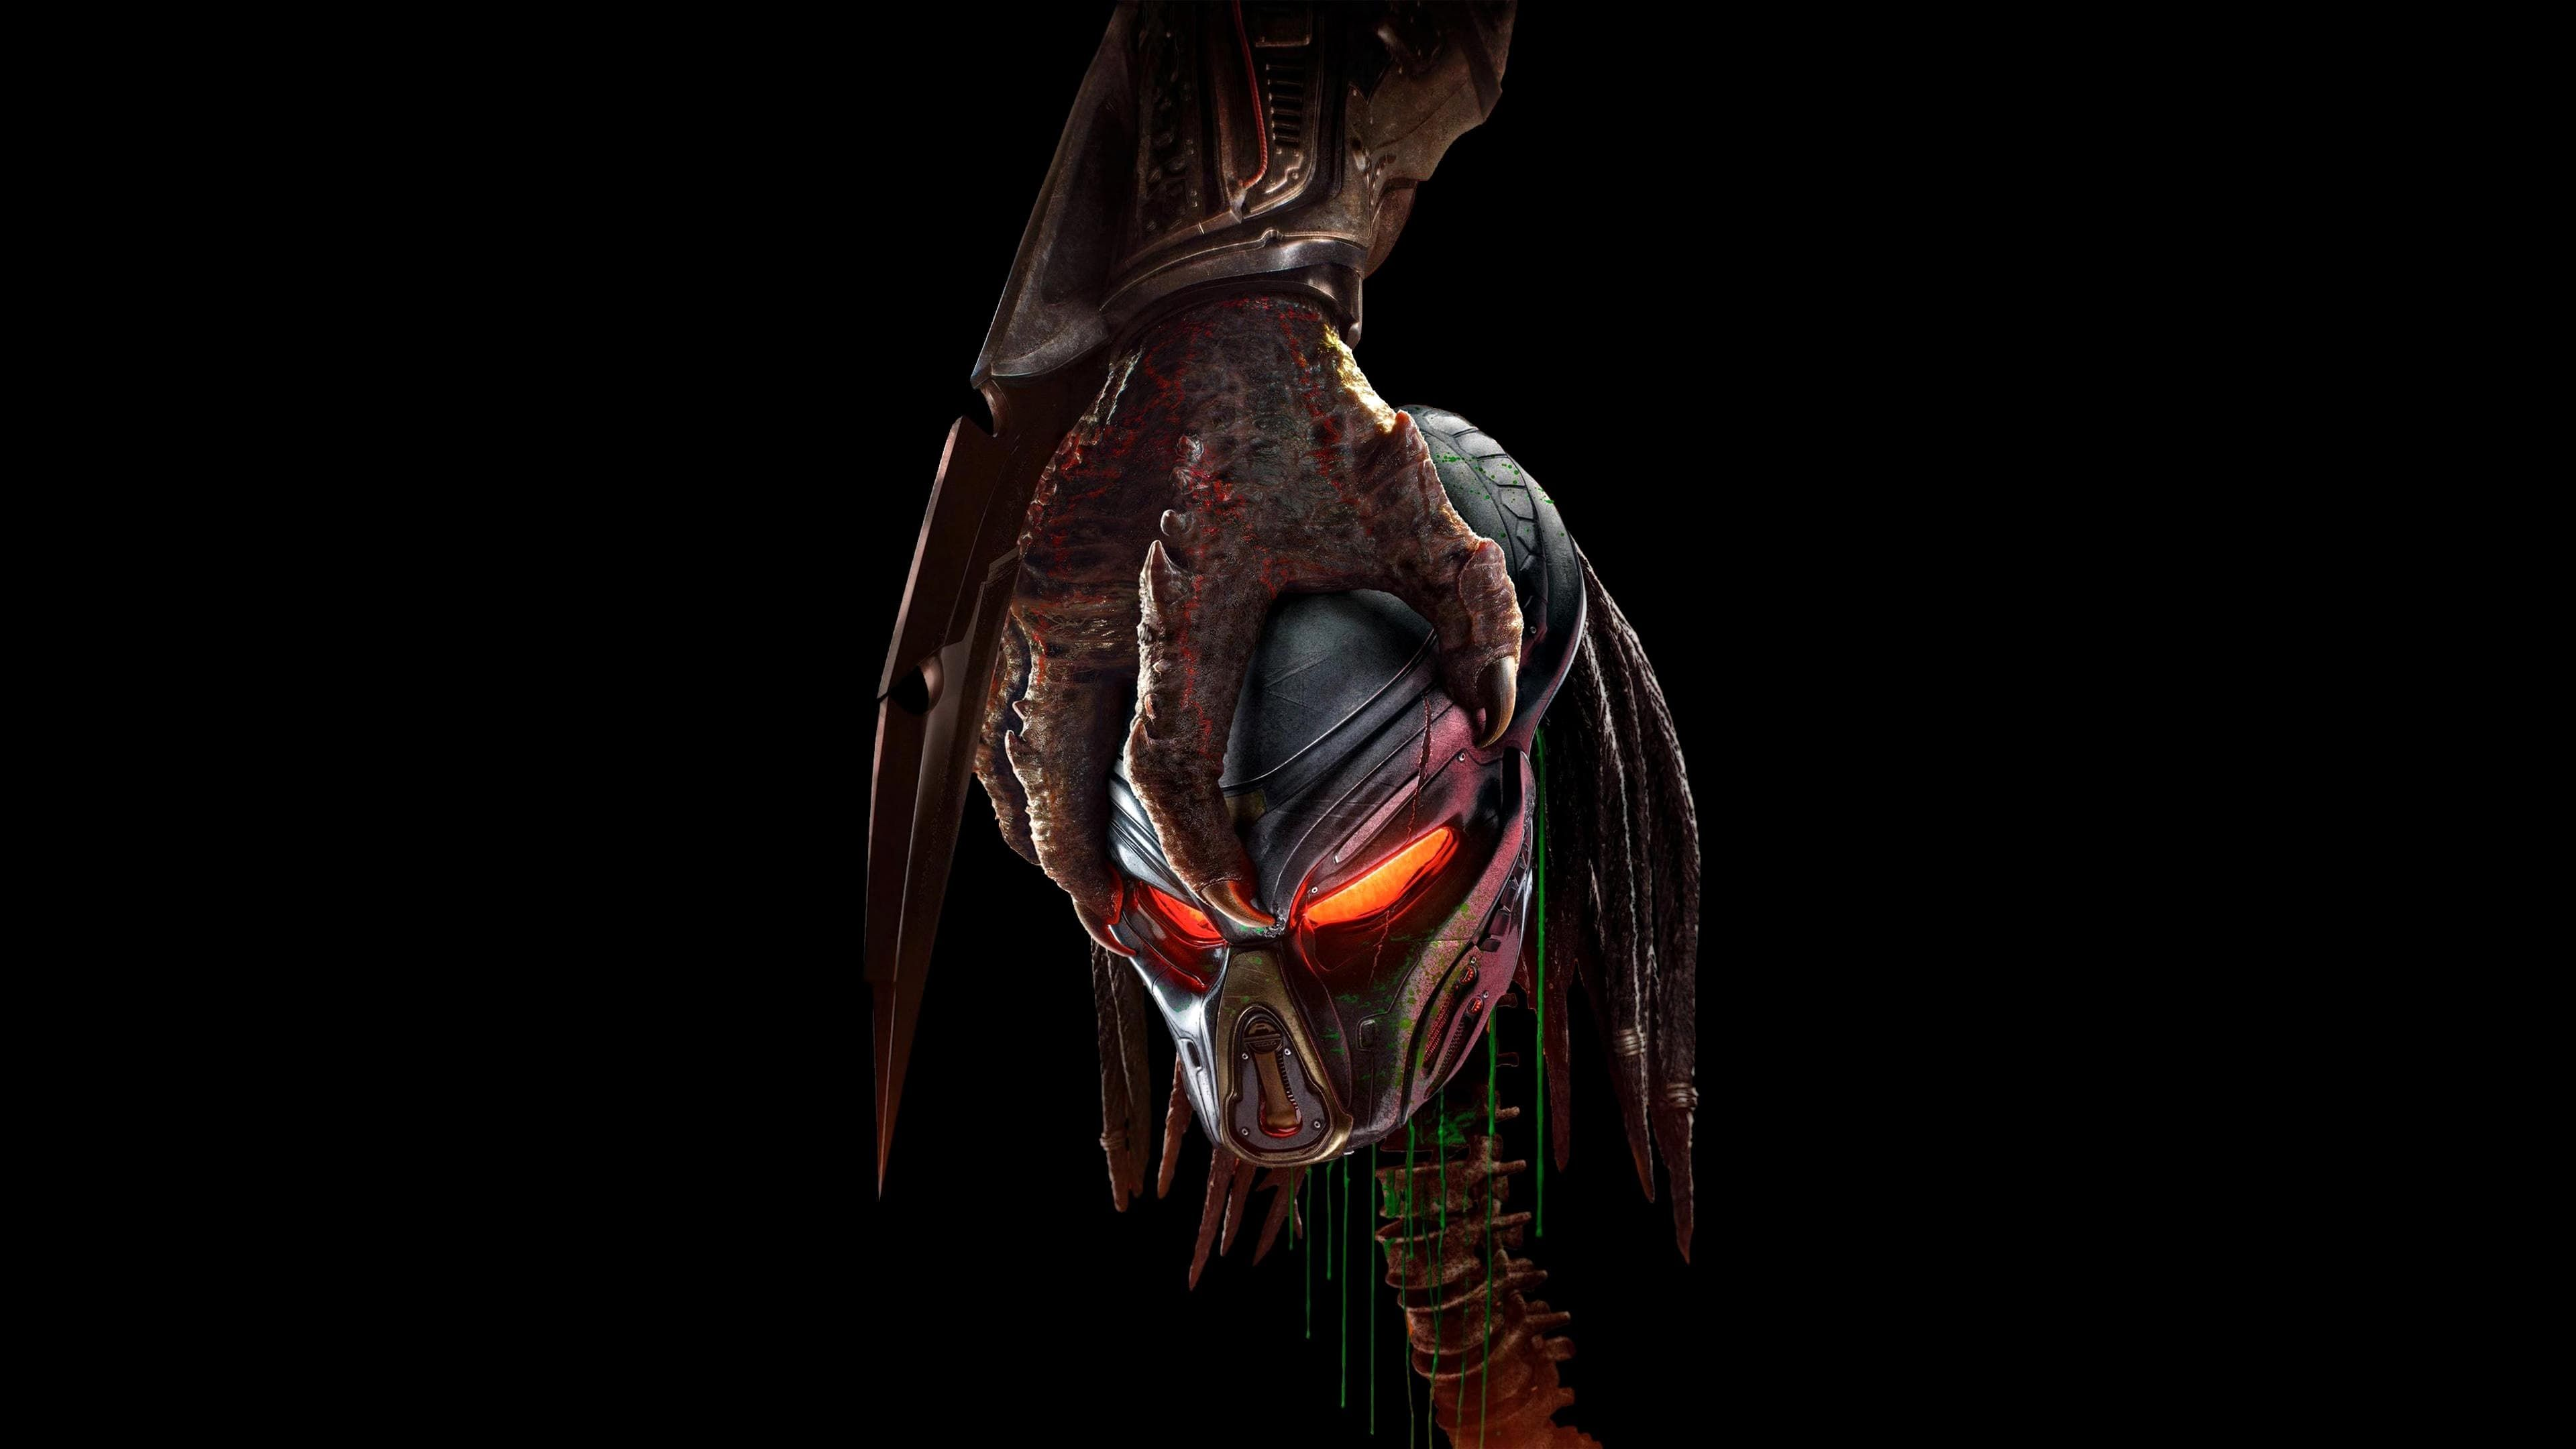 Watch The Predator 2018 Full Movie Online Free From The Outer Reaches Of Space To The Small Town Stre Predator Full Movie Free Movies Online Predator Movie